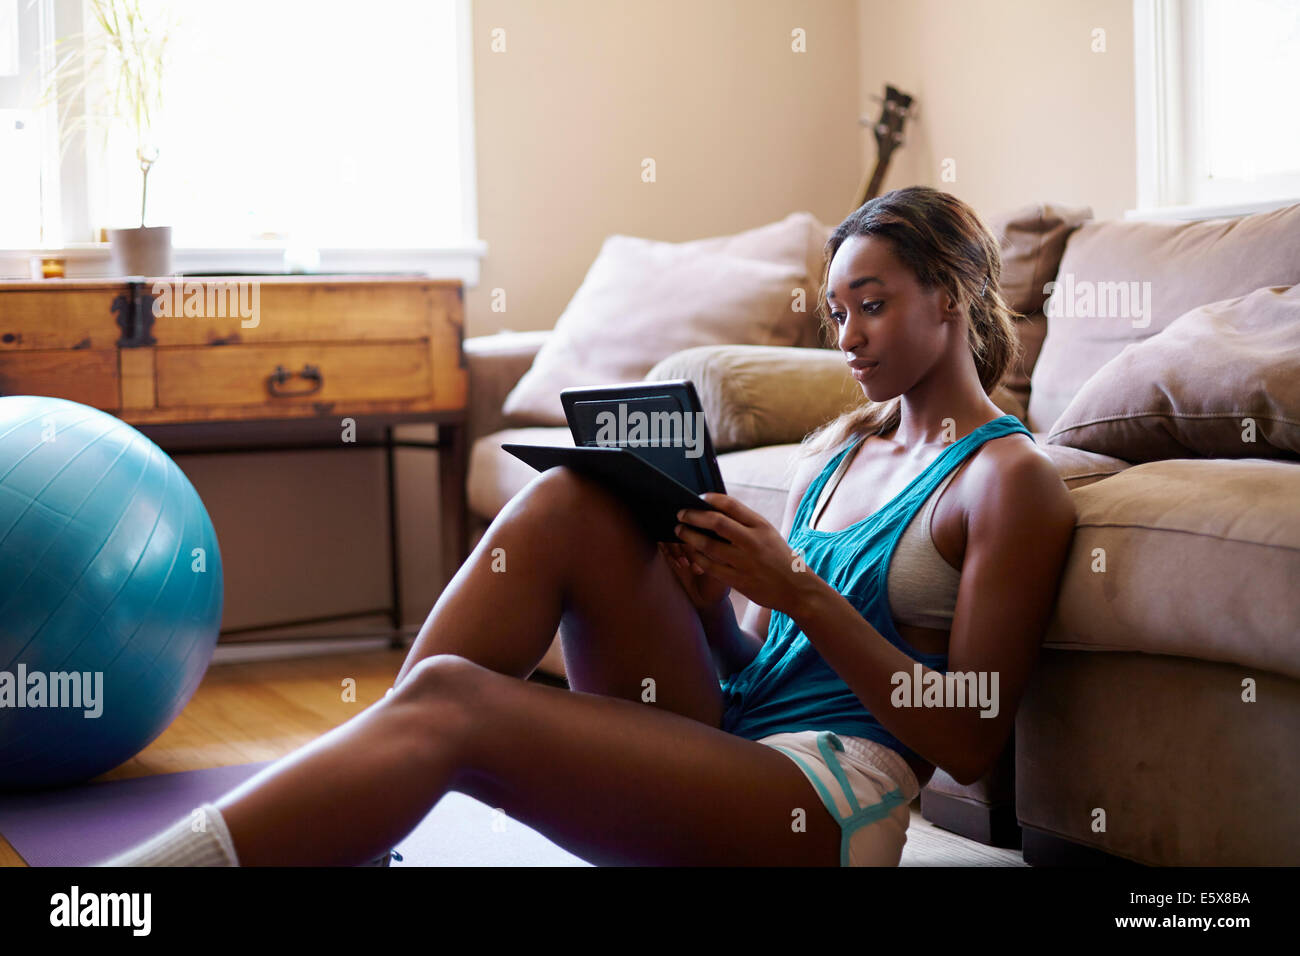 Young woman taking a training break, looking at digital tablet in sitting room - Stock Image